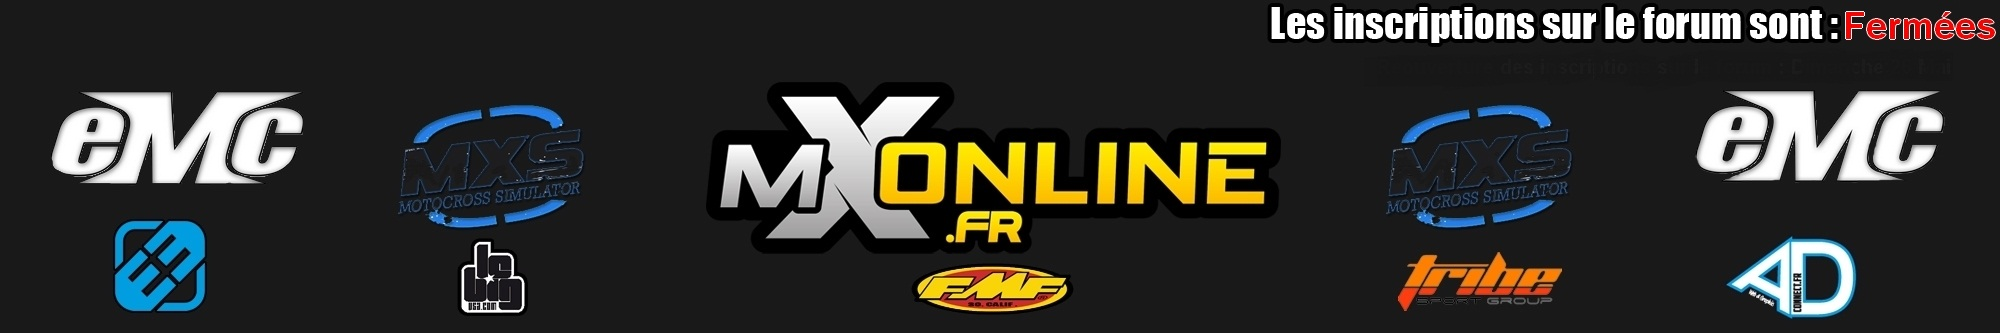 MX SIMULATOR / MX-ONLINE.FR  Forum organisation championnat de France MX SIM Forum Index